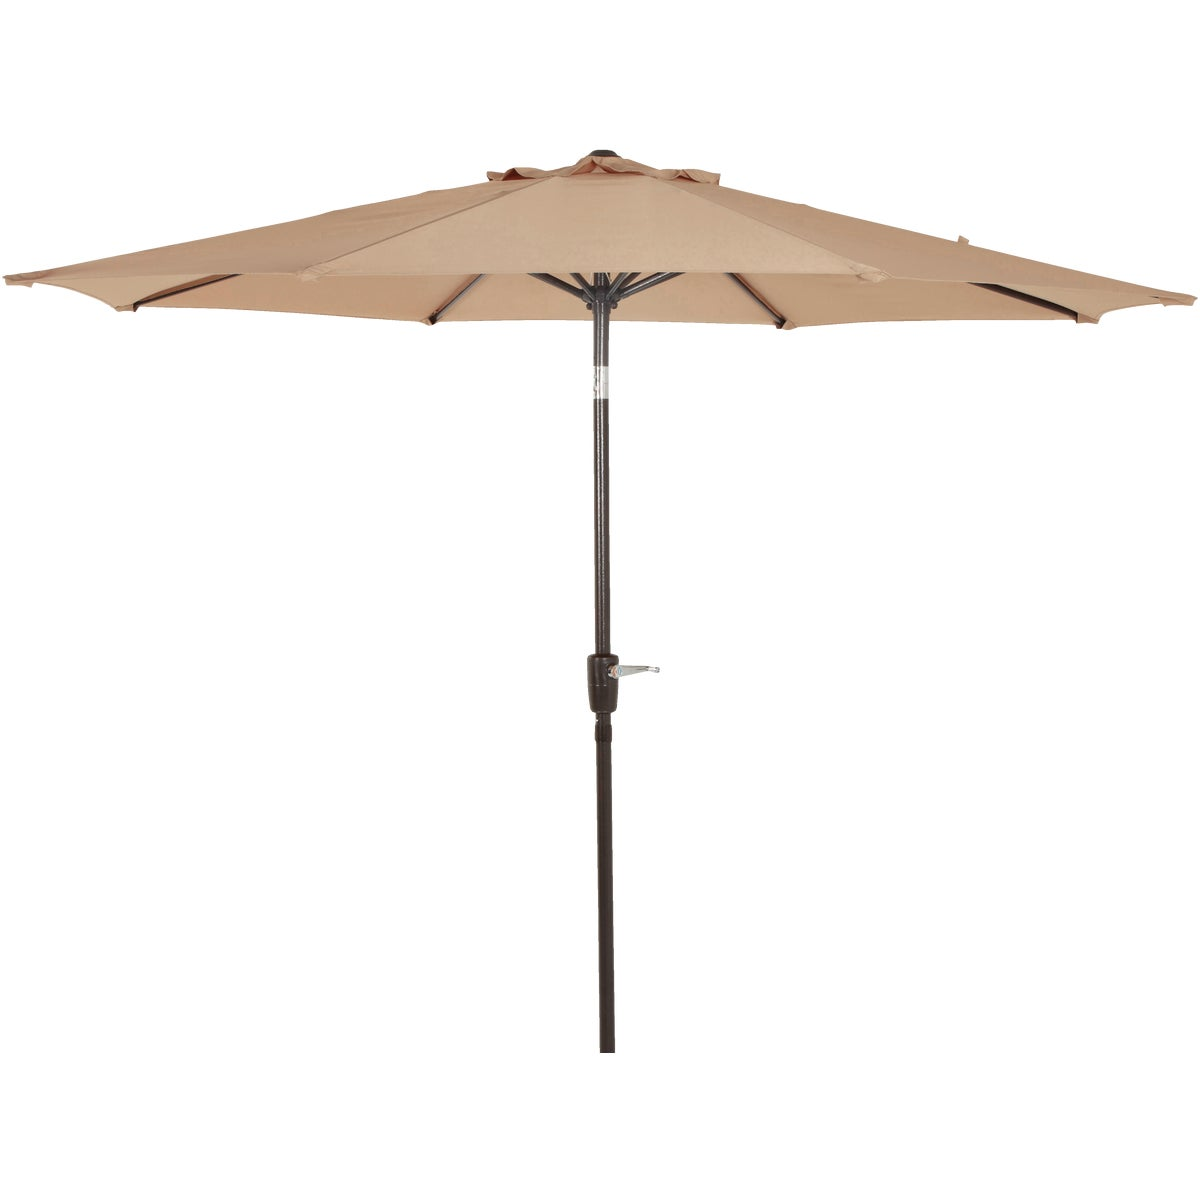 9' TAN ALUM UMBRELLA - TJAU-004A-270-TN by Do it Best